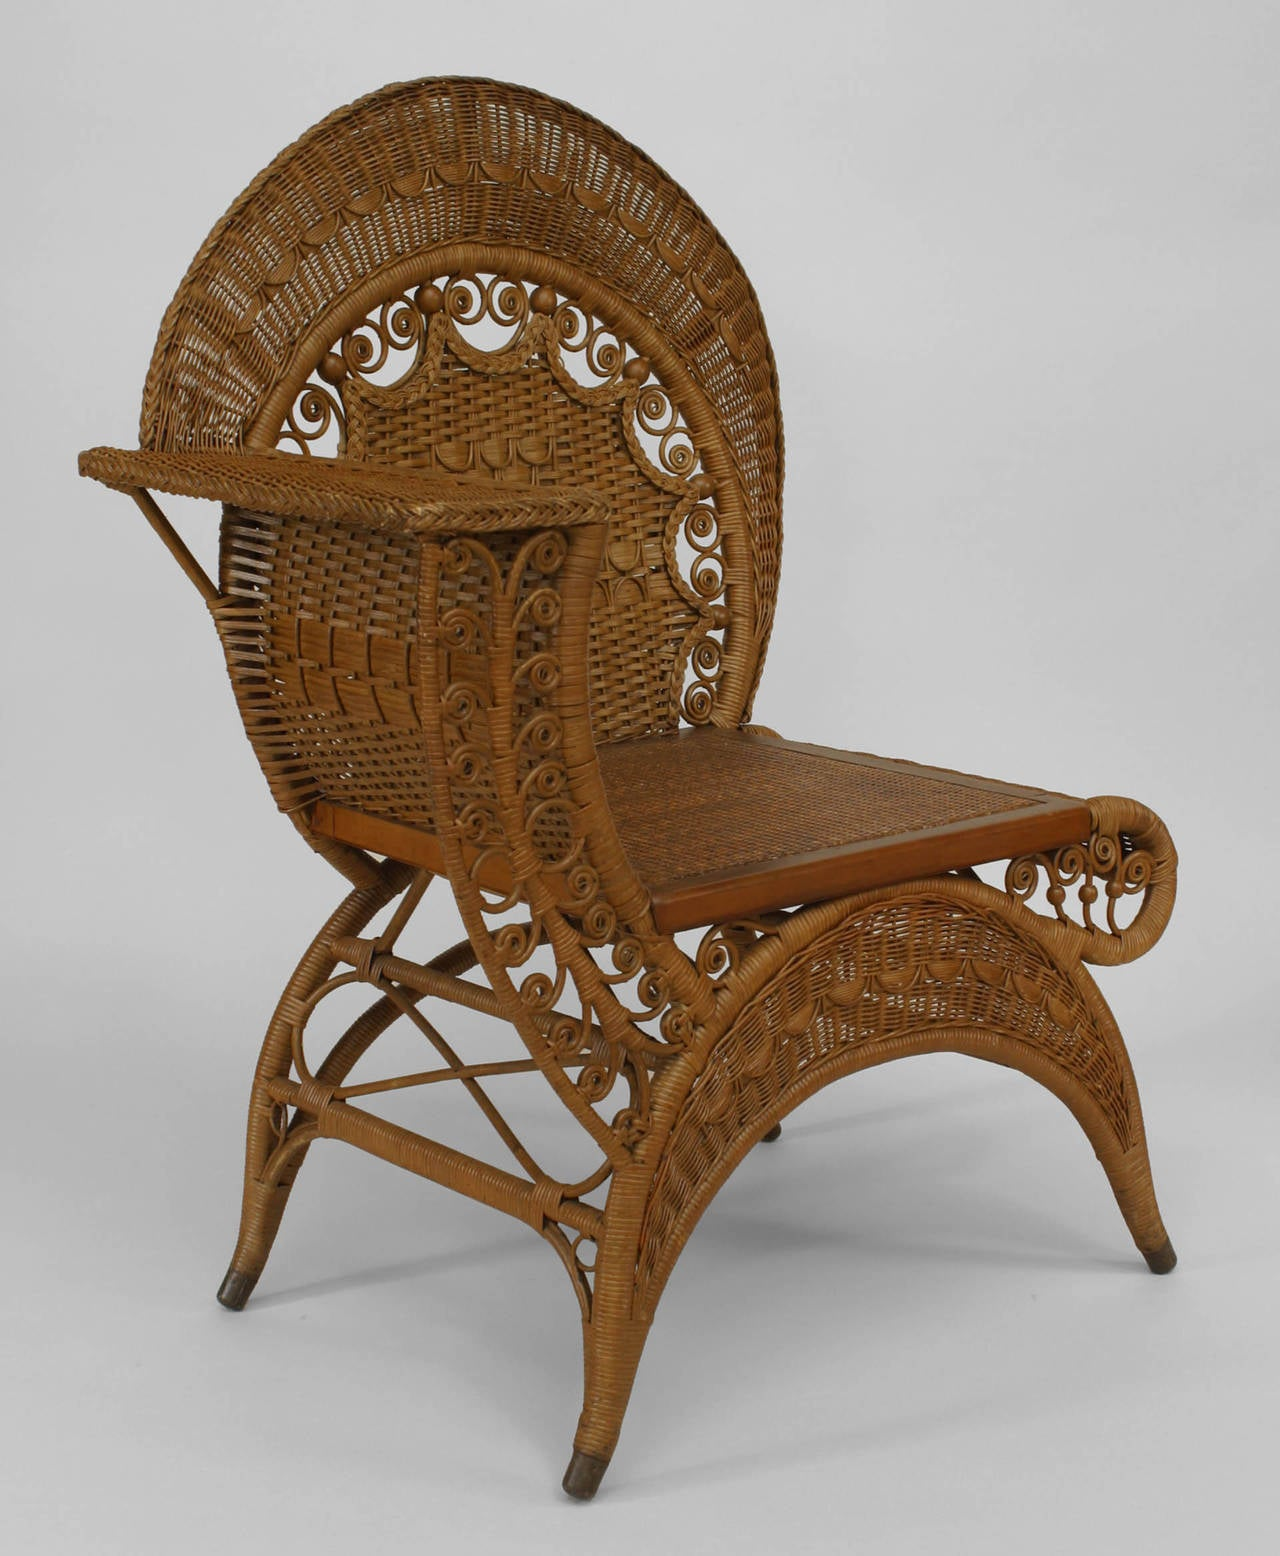 heywood wakefield wicker chairs desk chair used 19th century american photographer 39s by